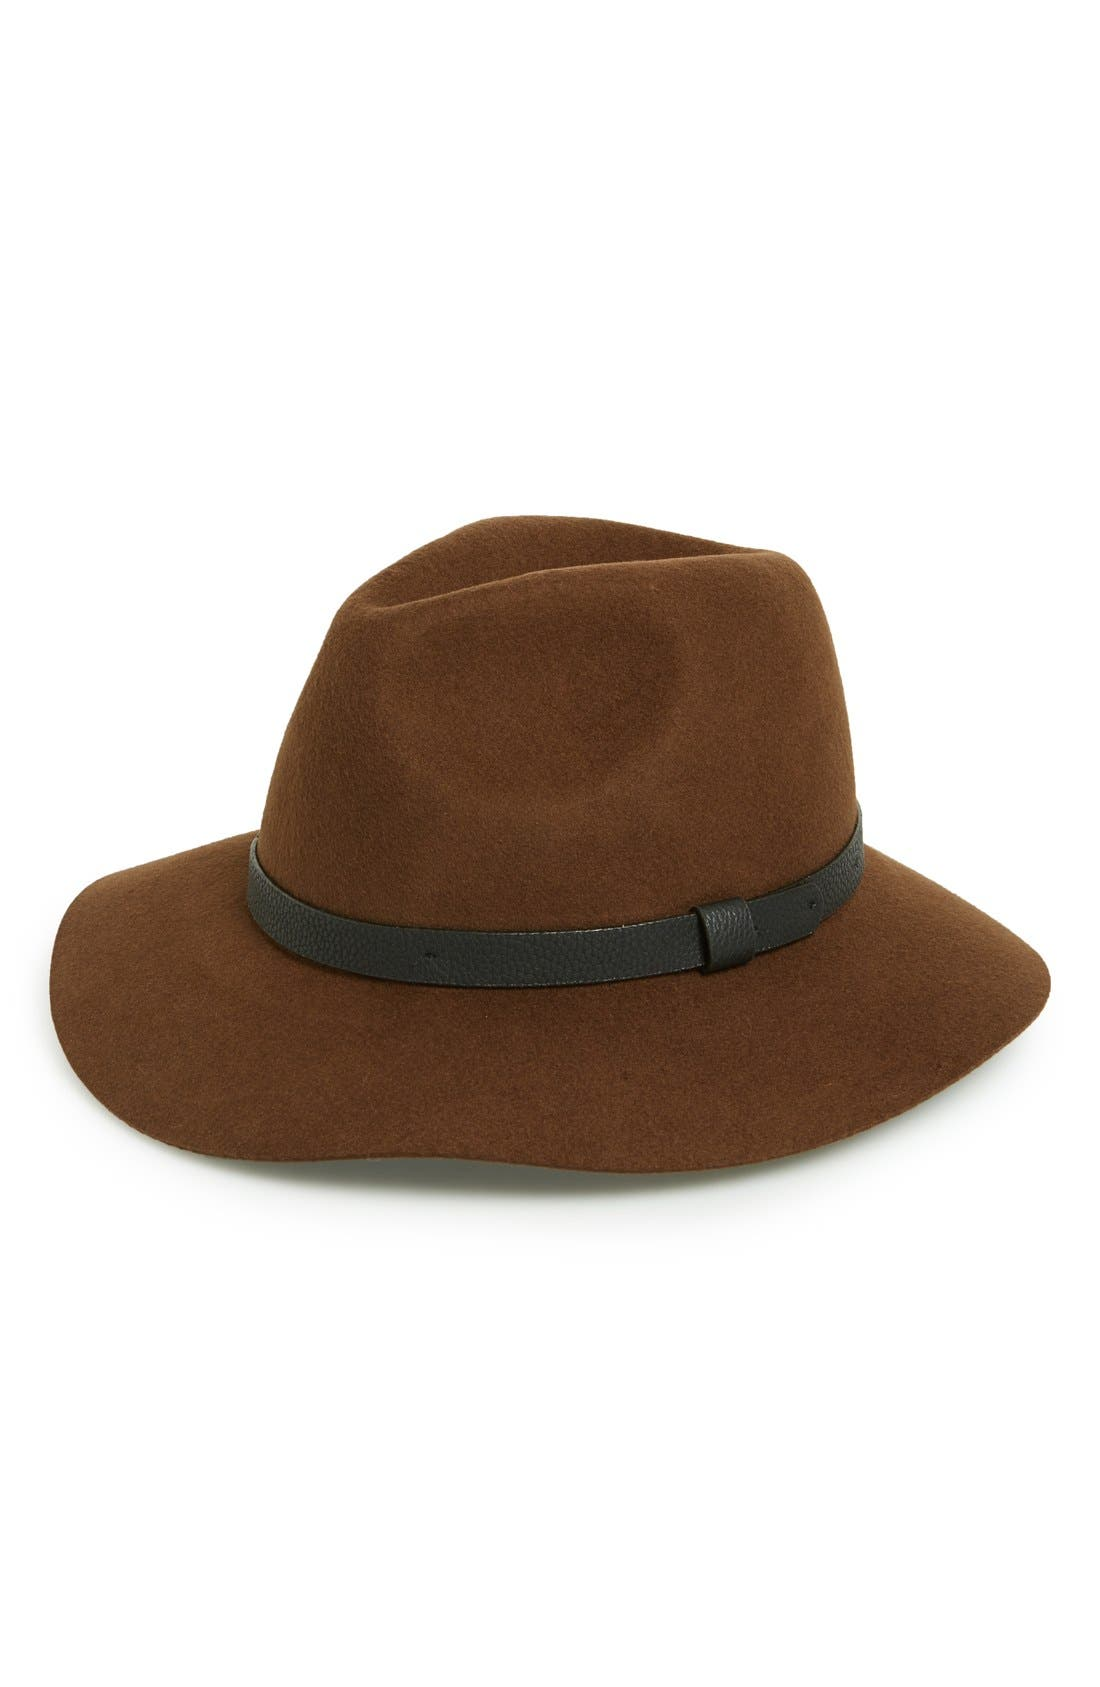 Main Image - Sole Society 'Outback' Wool Hat